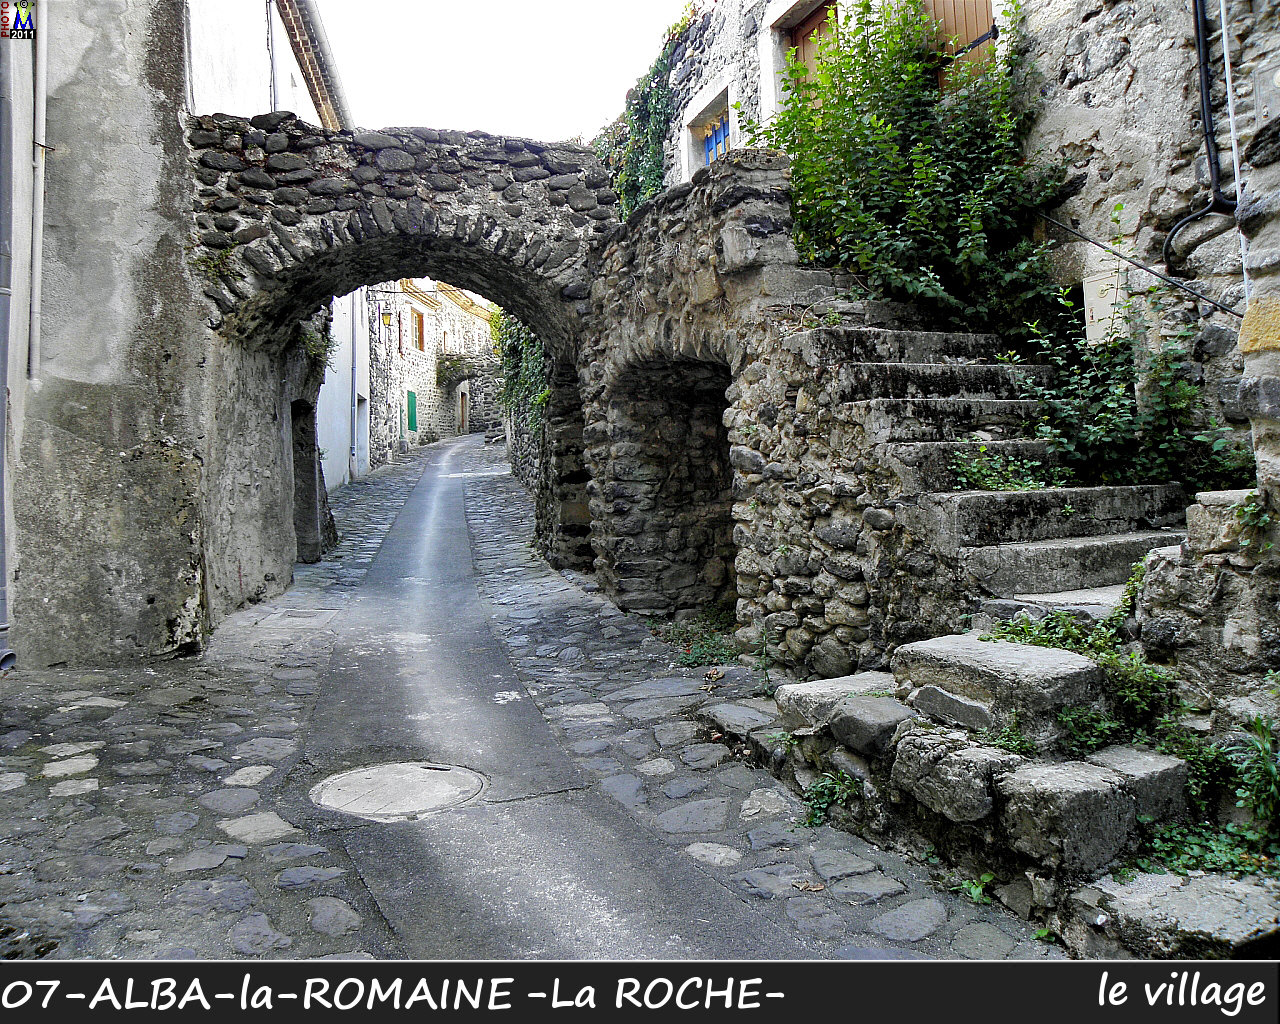 07ALBA-ROMAINEzROCHE_village_142.jpg